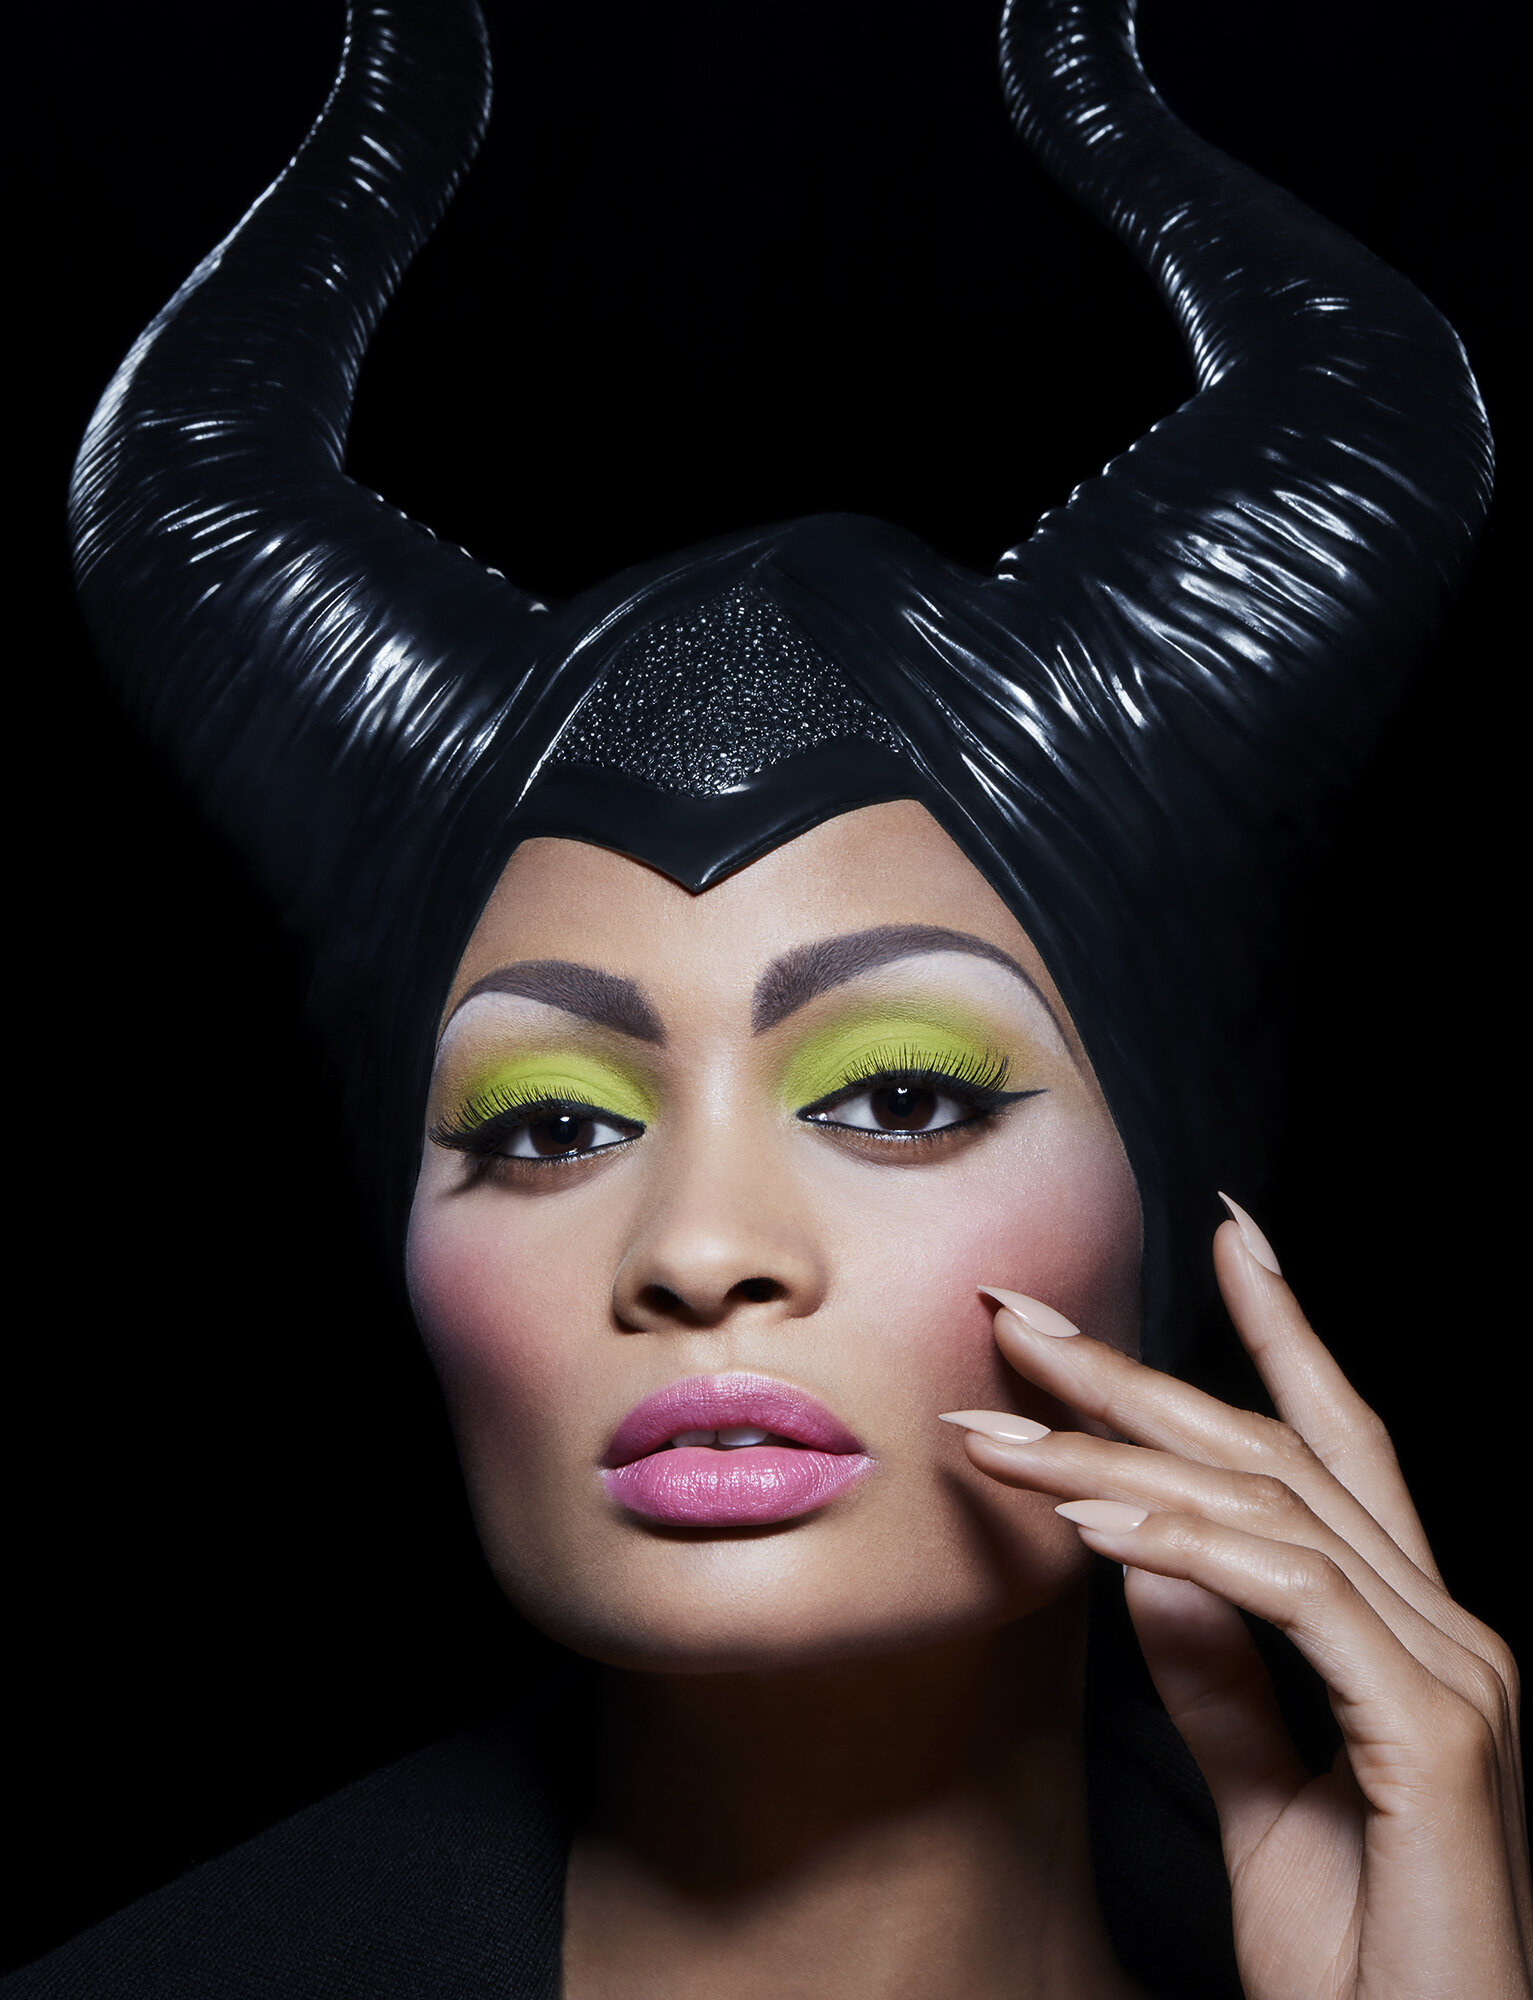 191031_MacCosmetics_Maleficent_Good_By_BriJohnsonStudios.jpg.jpg